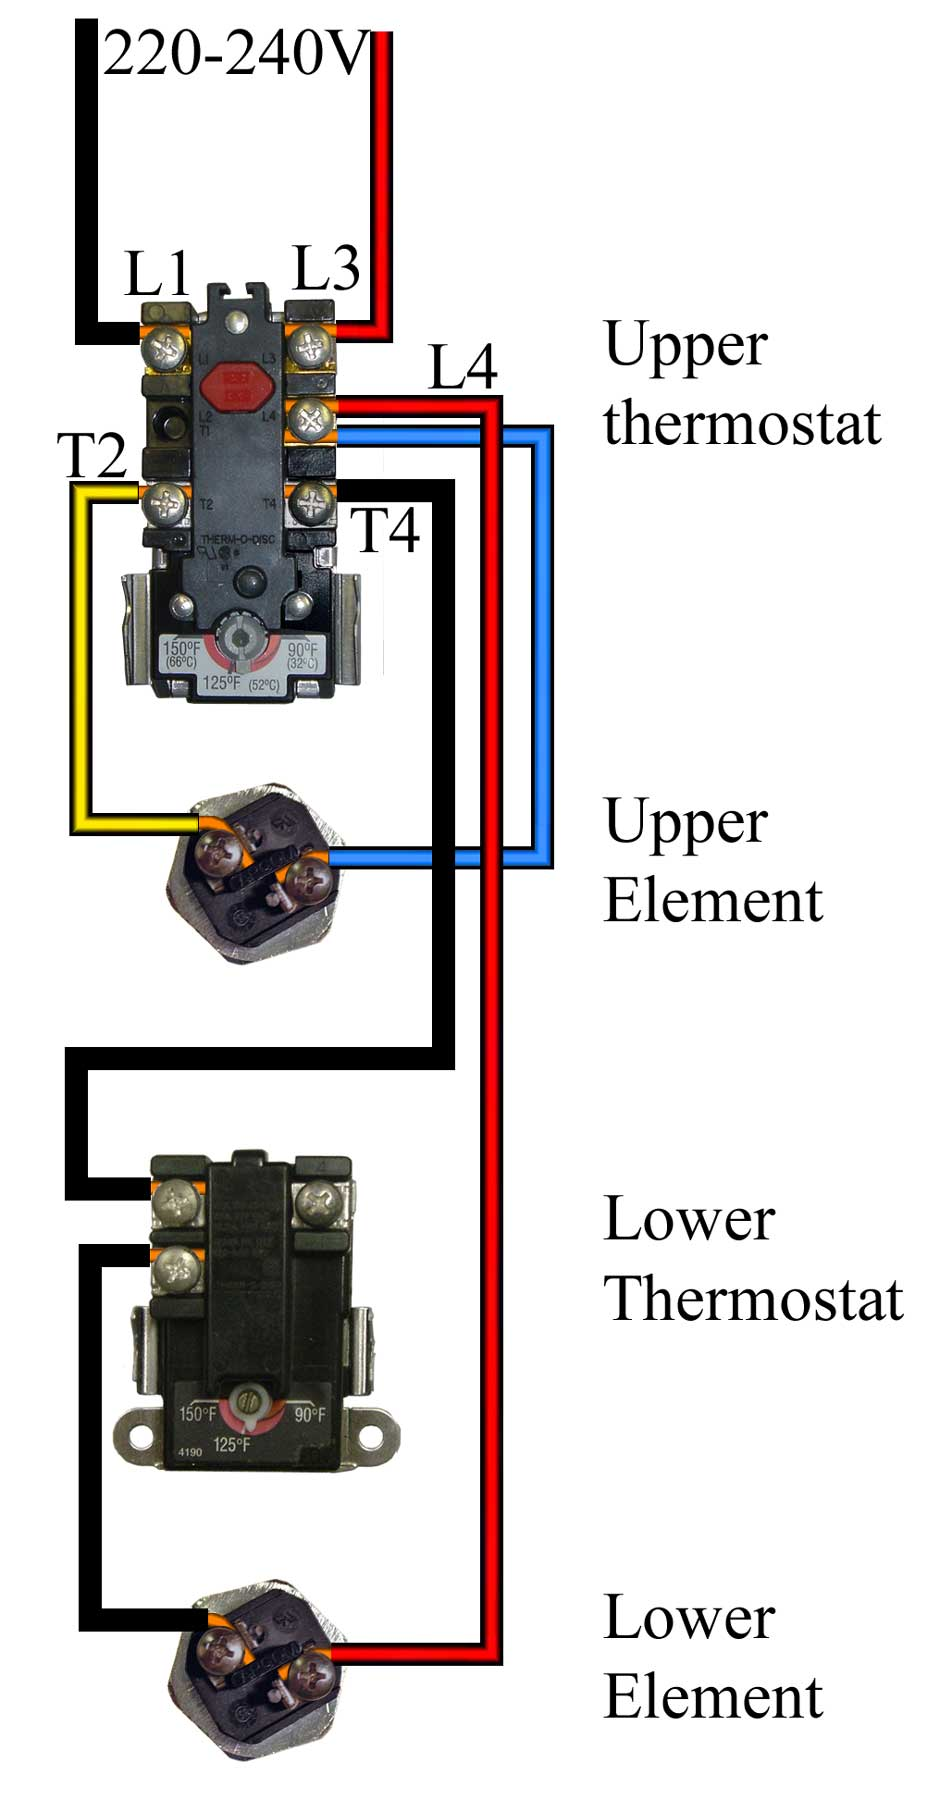 Camco Single Element Thermostat Wiring Diagram further Therm O Disc Thermostat Wiring Diagram together with Rheem Tankless Water Heater Wiring Diagram additionally Therm O Disc Water Heater Thermostat Wiring Diagram additionally Therm O Disc Thermostat Wiring Diagram. on therm o disc water heater thermostat wiring diagram